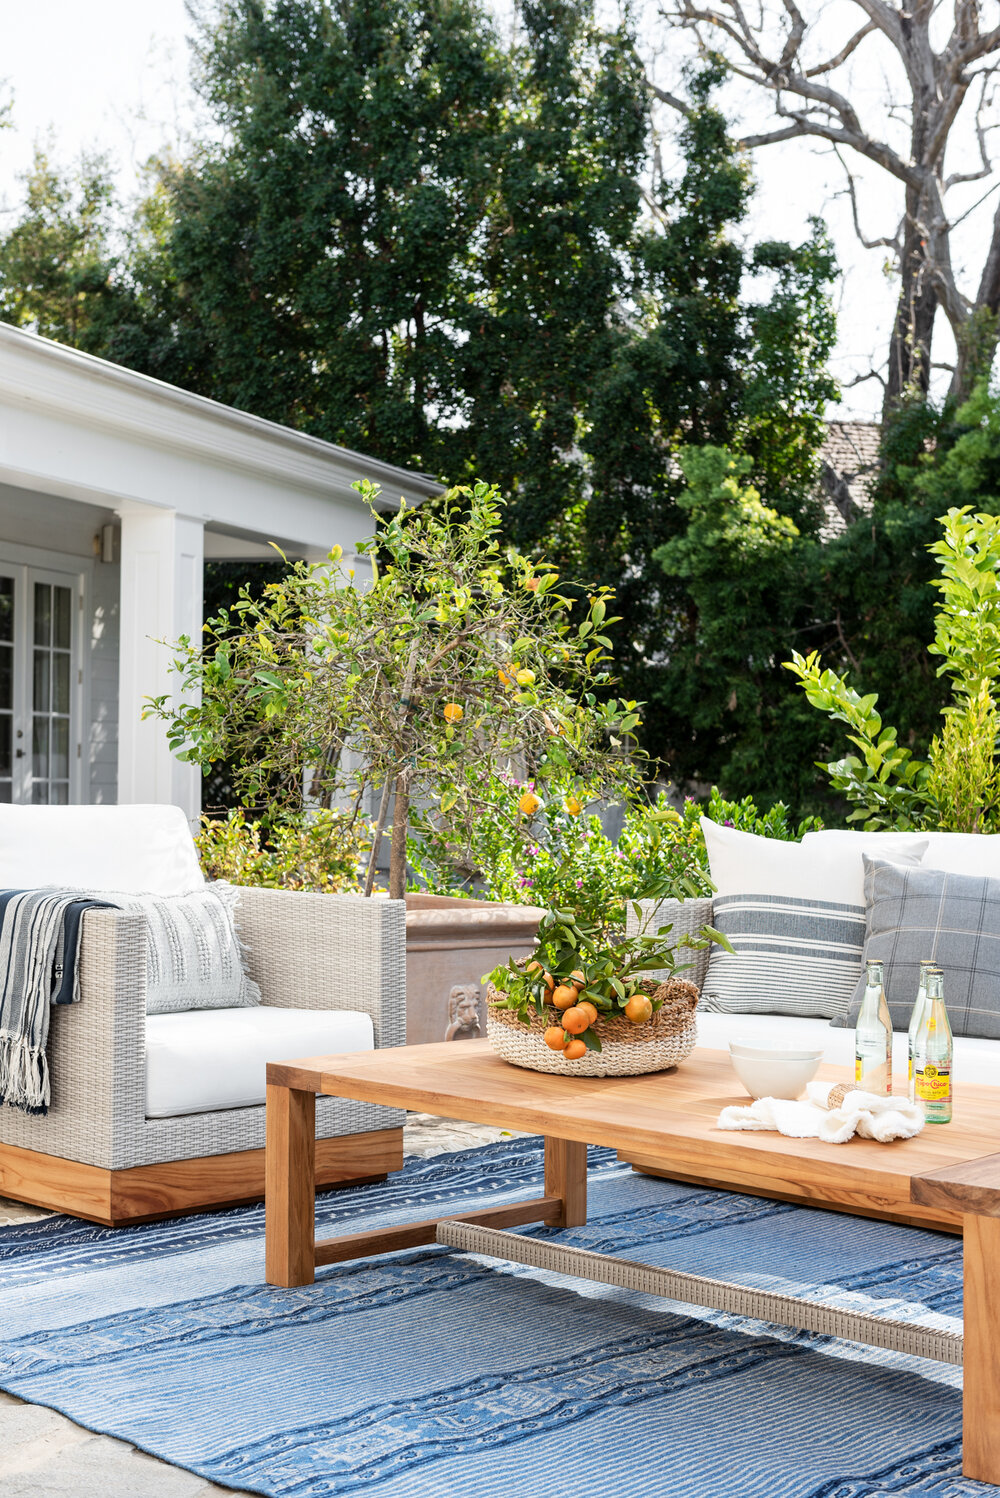 Our Guide to Creating an Outdoor Setting